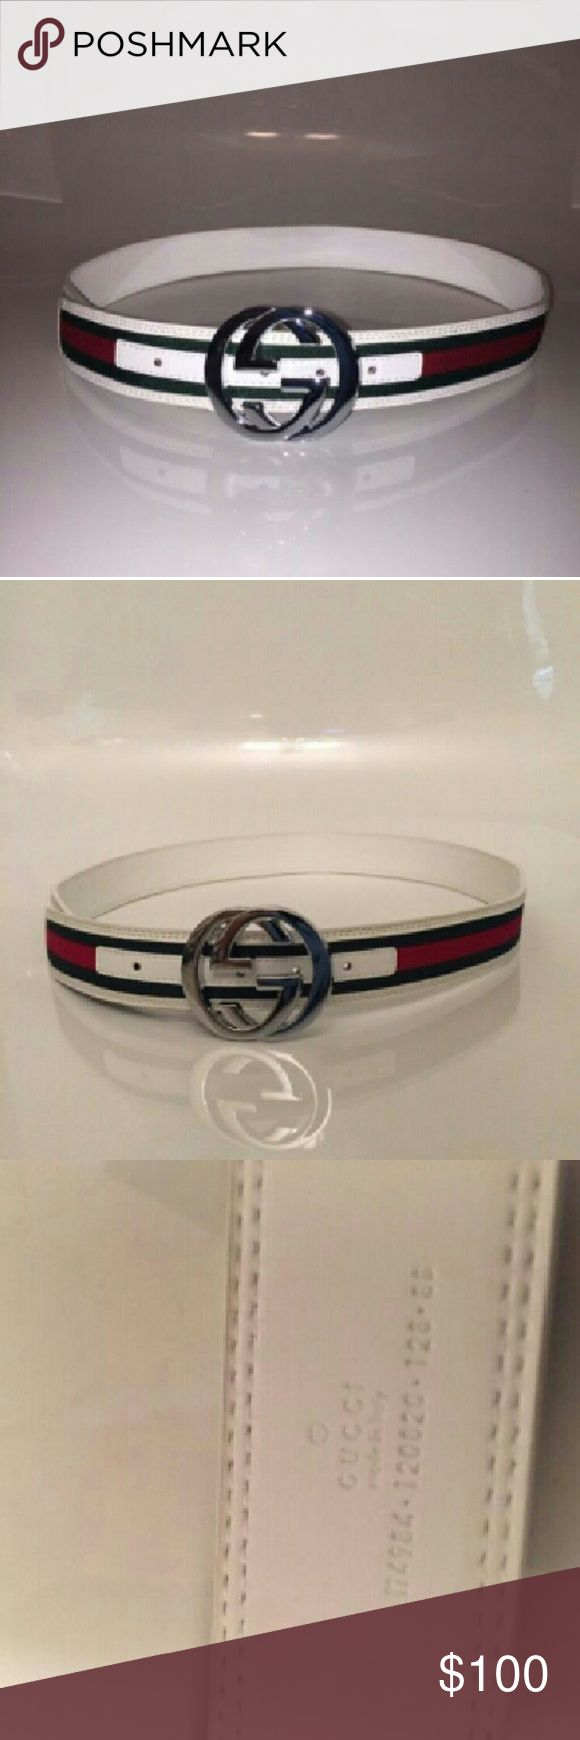 Gucci Belt Gucci inspired, Brand new, Ships same day, AAA Quality Gucci Accessories Belts